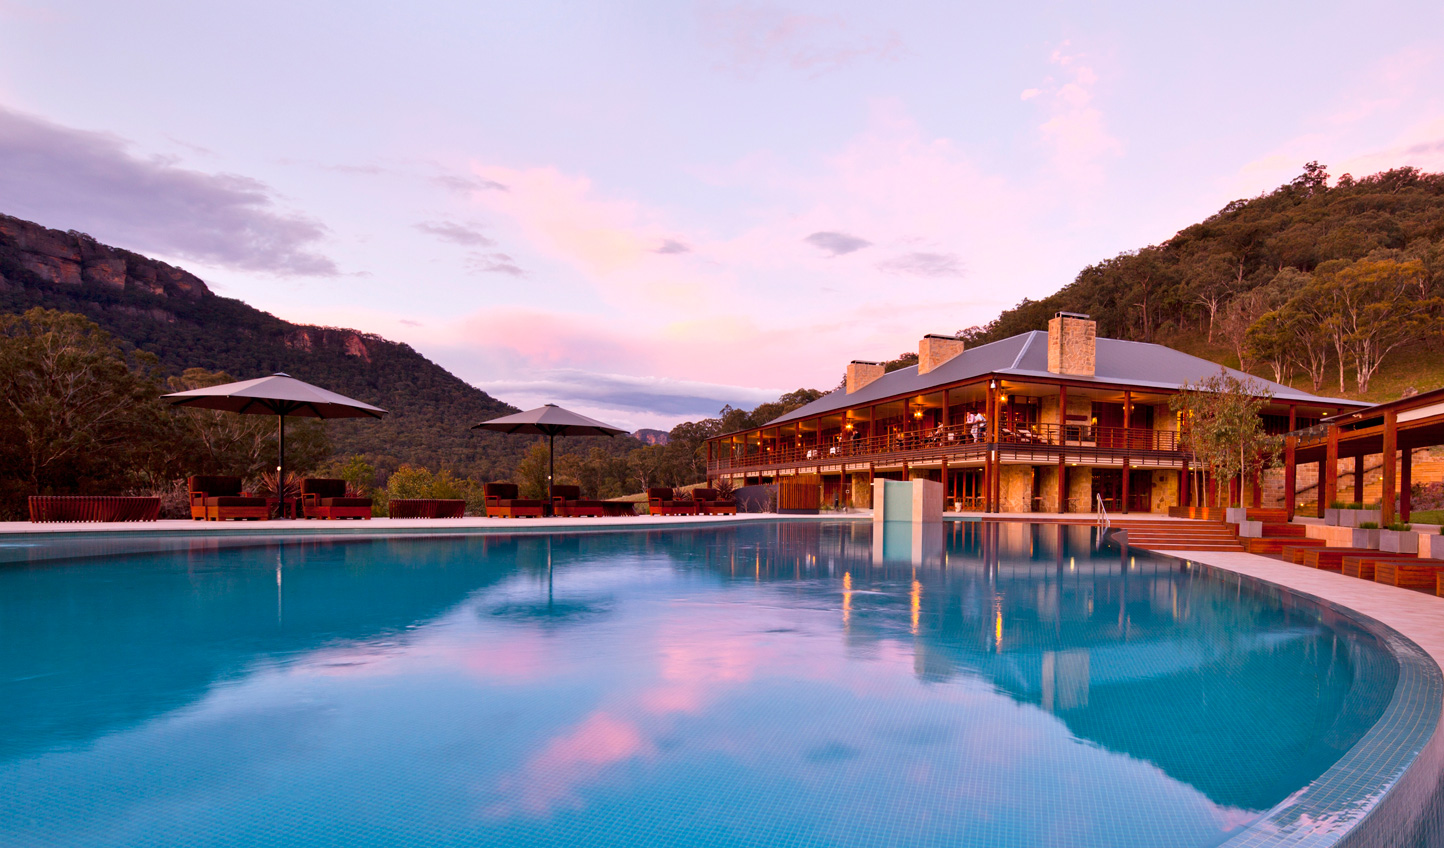 Escape the heat of day with a dip in the pool